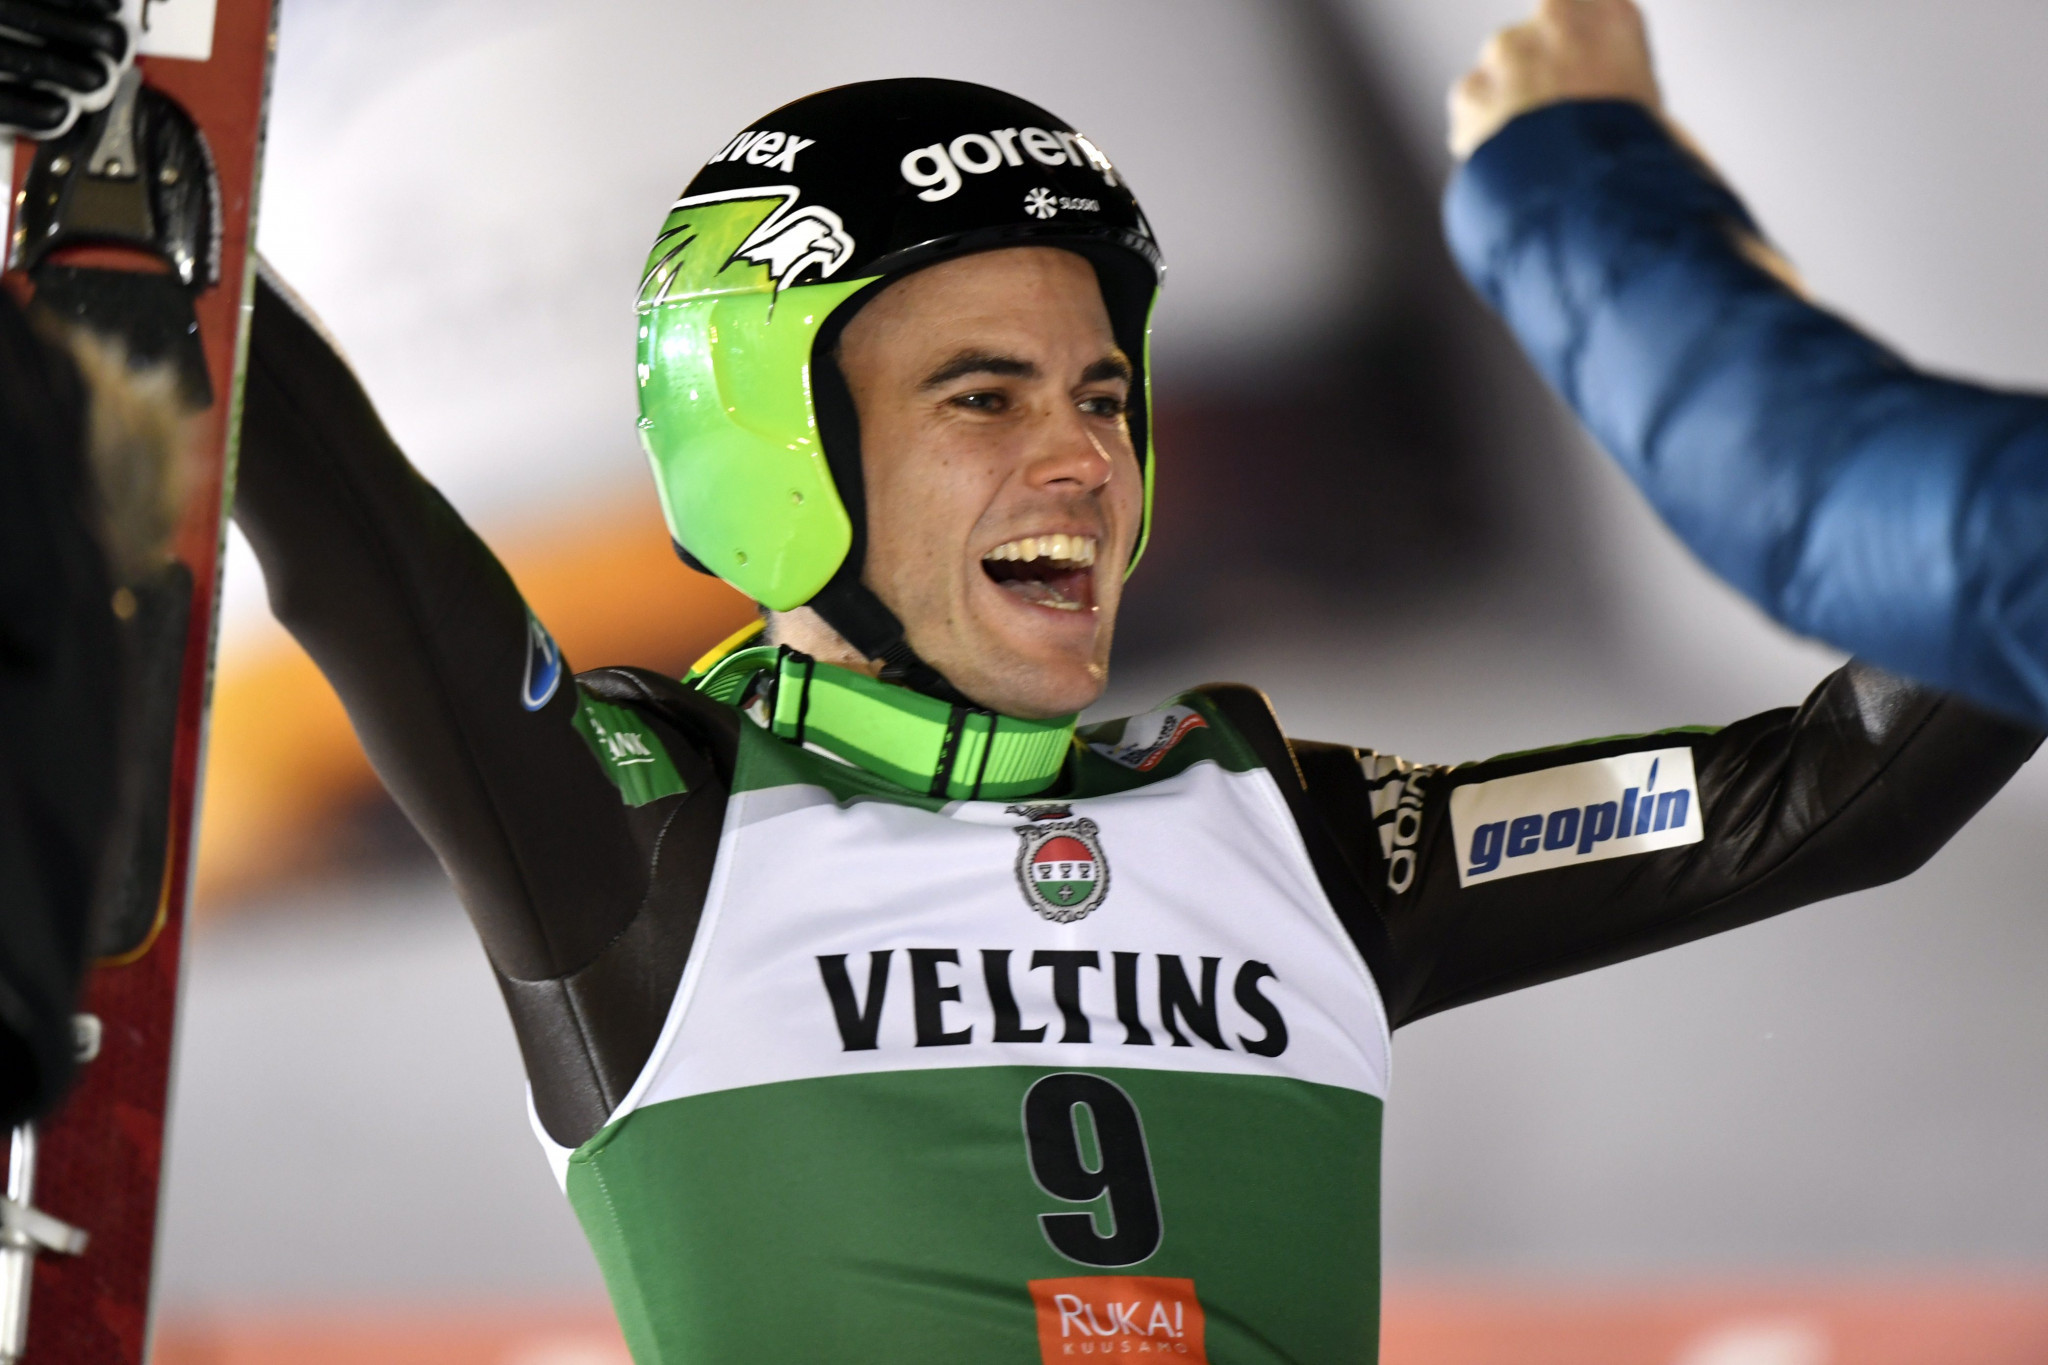 Damjan takes surprise victory at FIS Ski Jumping World Cup in Ruka